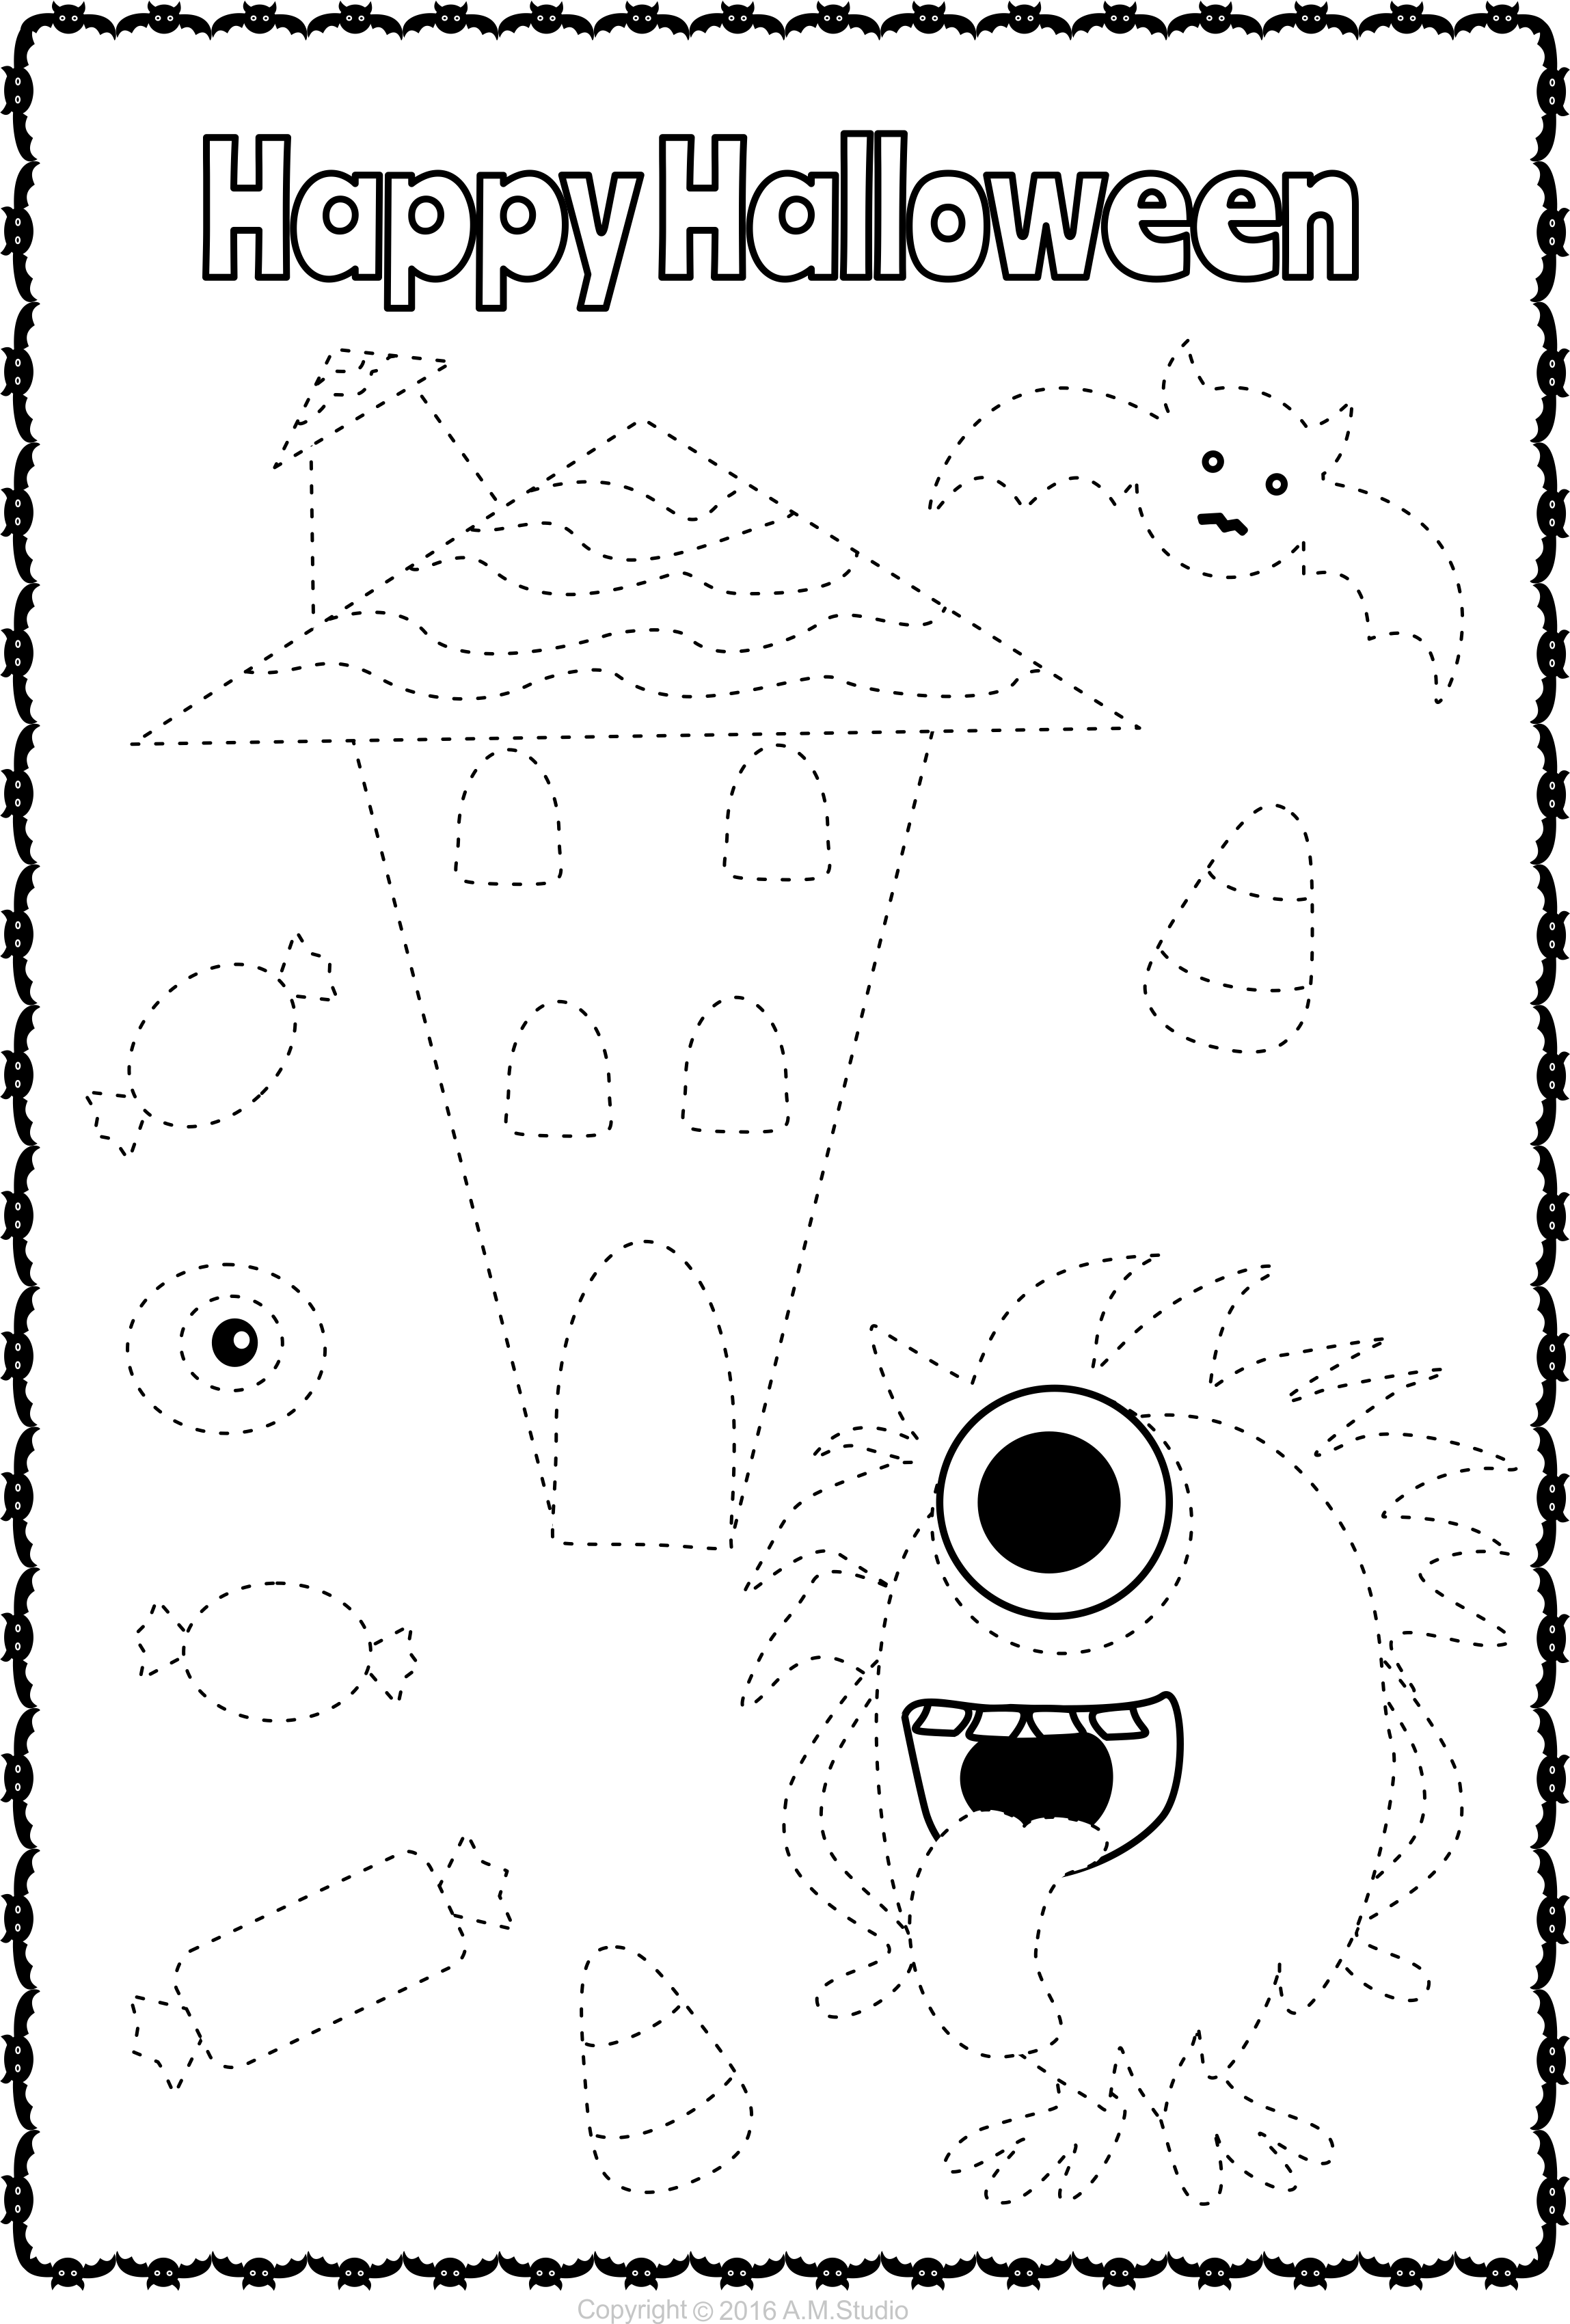 13 Halloween Themed Trace And Color Pages For Kids Halloween Worksheets Halloween Craft Activities Halloween Classroom [ 3400 x 2297 Pixel ]